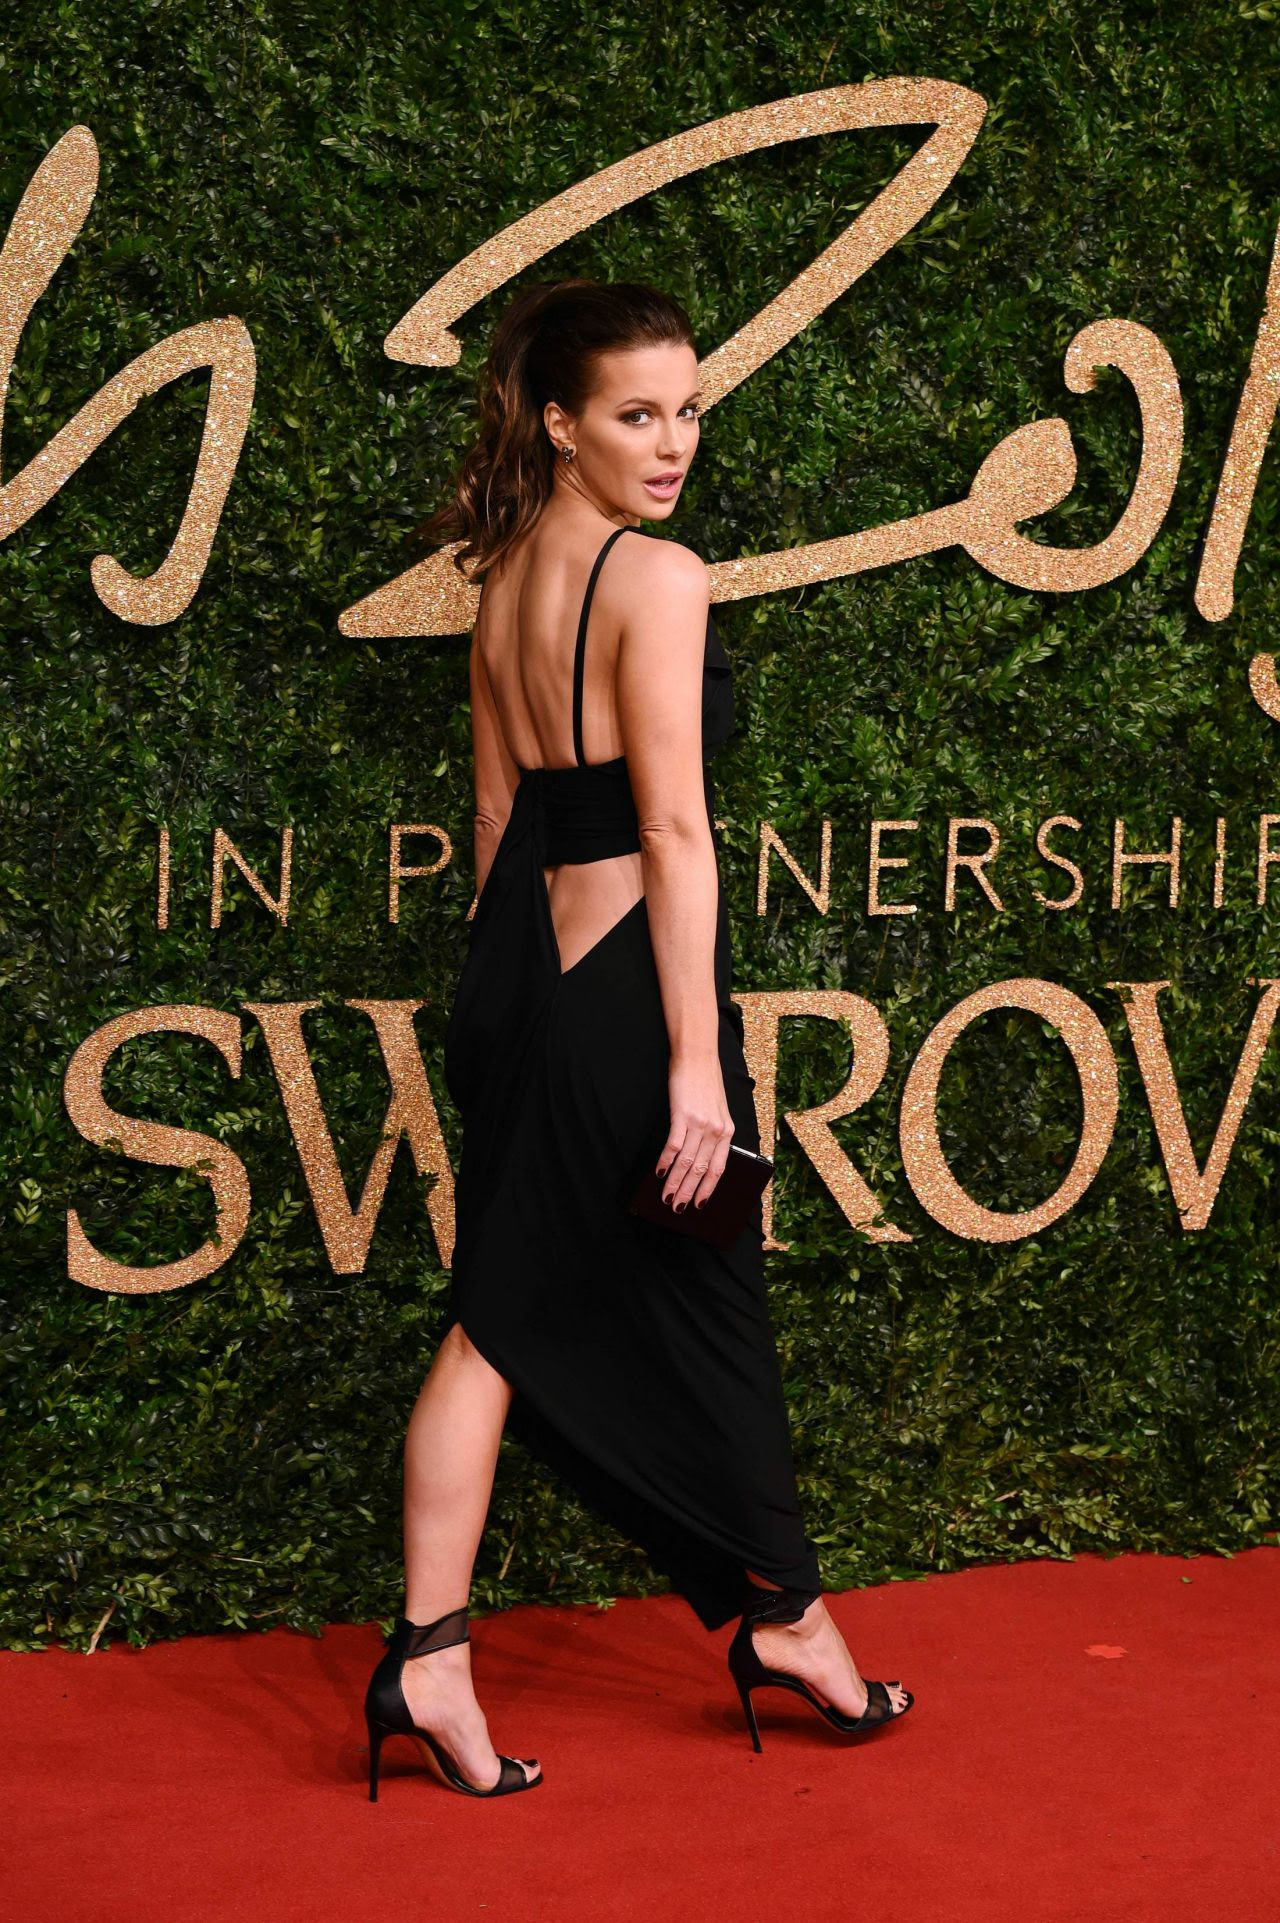 http://celebmafia.com/wp-content/uploads/2015/11/kate-beckinsale-british-fashion-awards-2015-at-london-coliseum_5.jpg